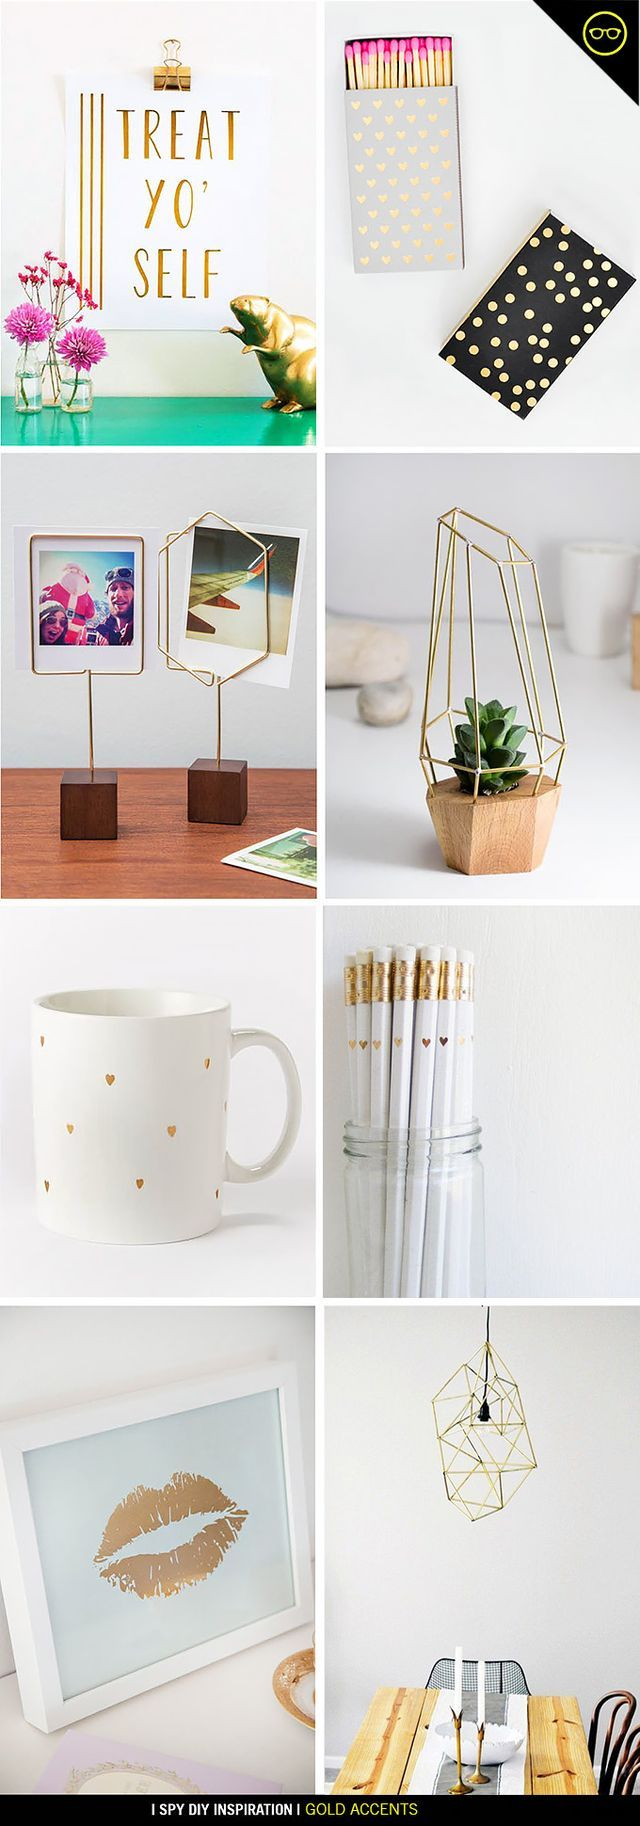 best diy crafts images on pinterest bricolage creativity and